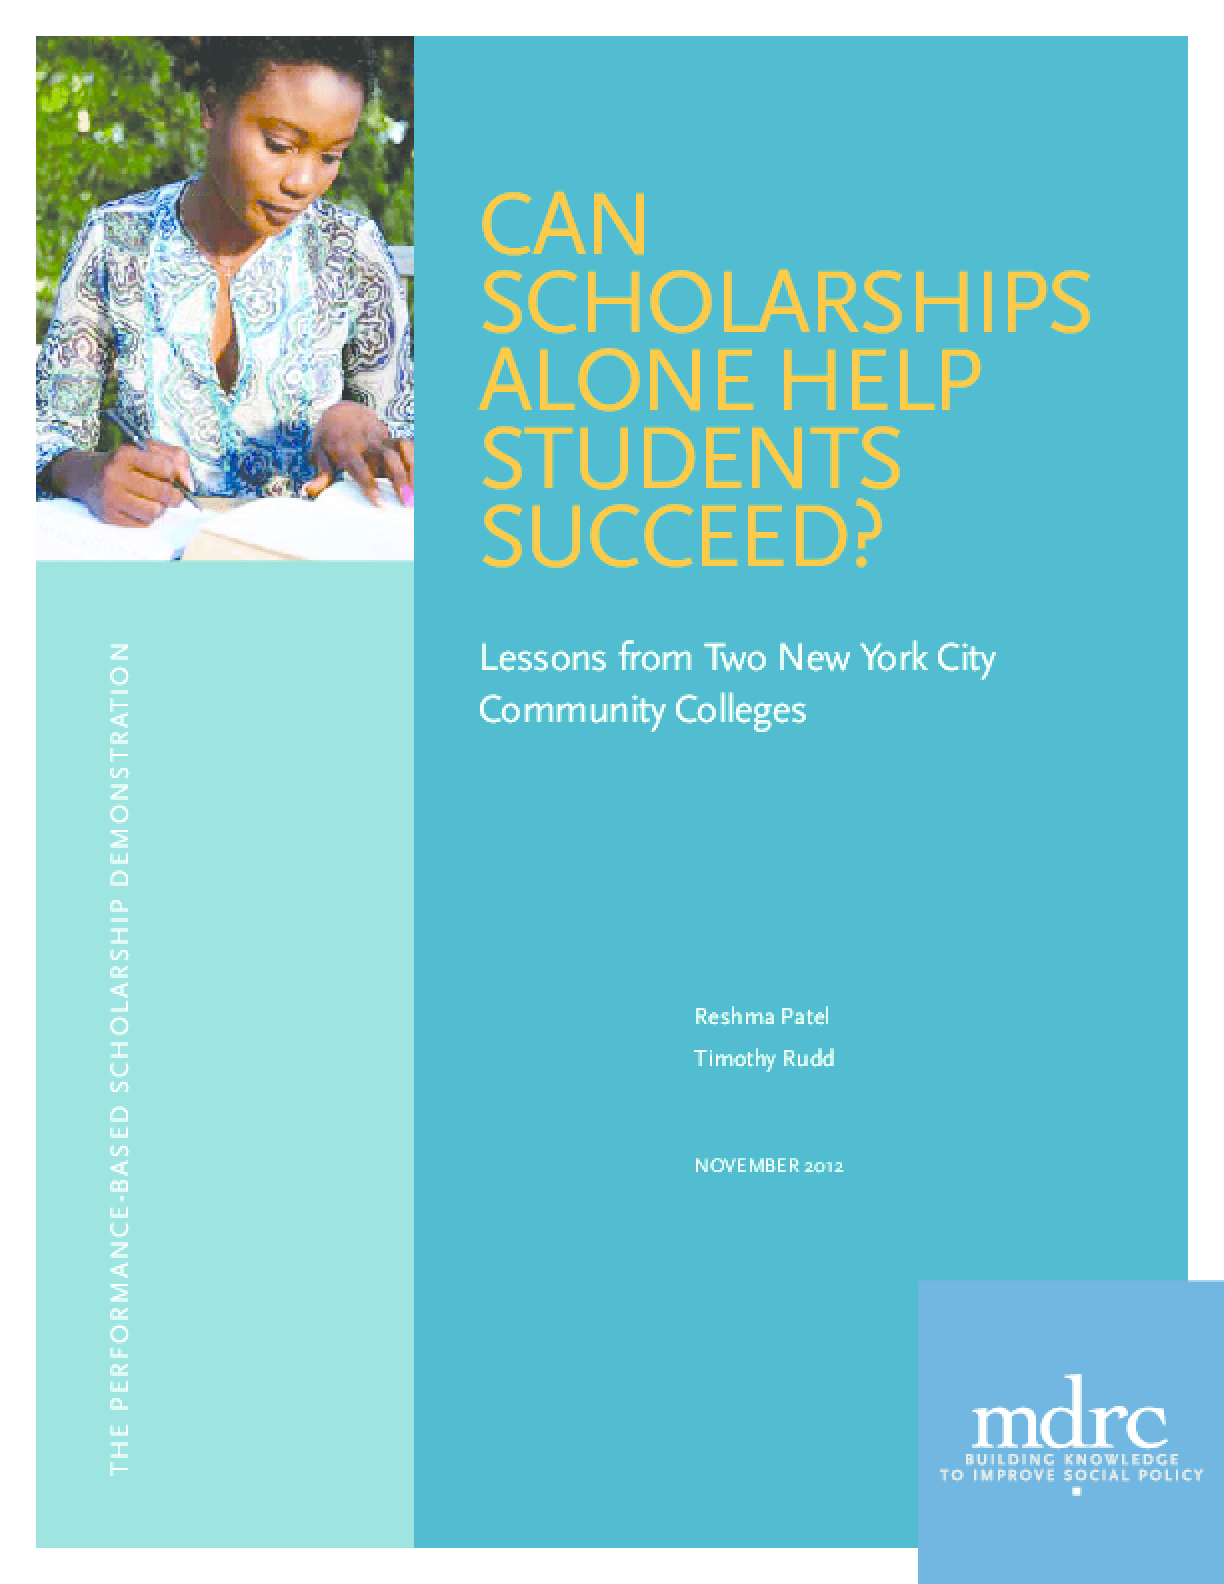 Can Scholarships Alone Help Students Succeed?: Lessons from Two NYC Community Colleges